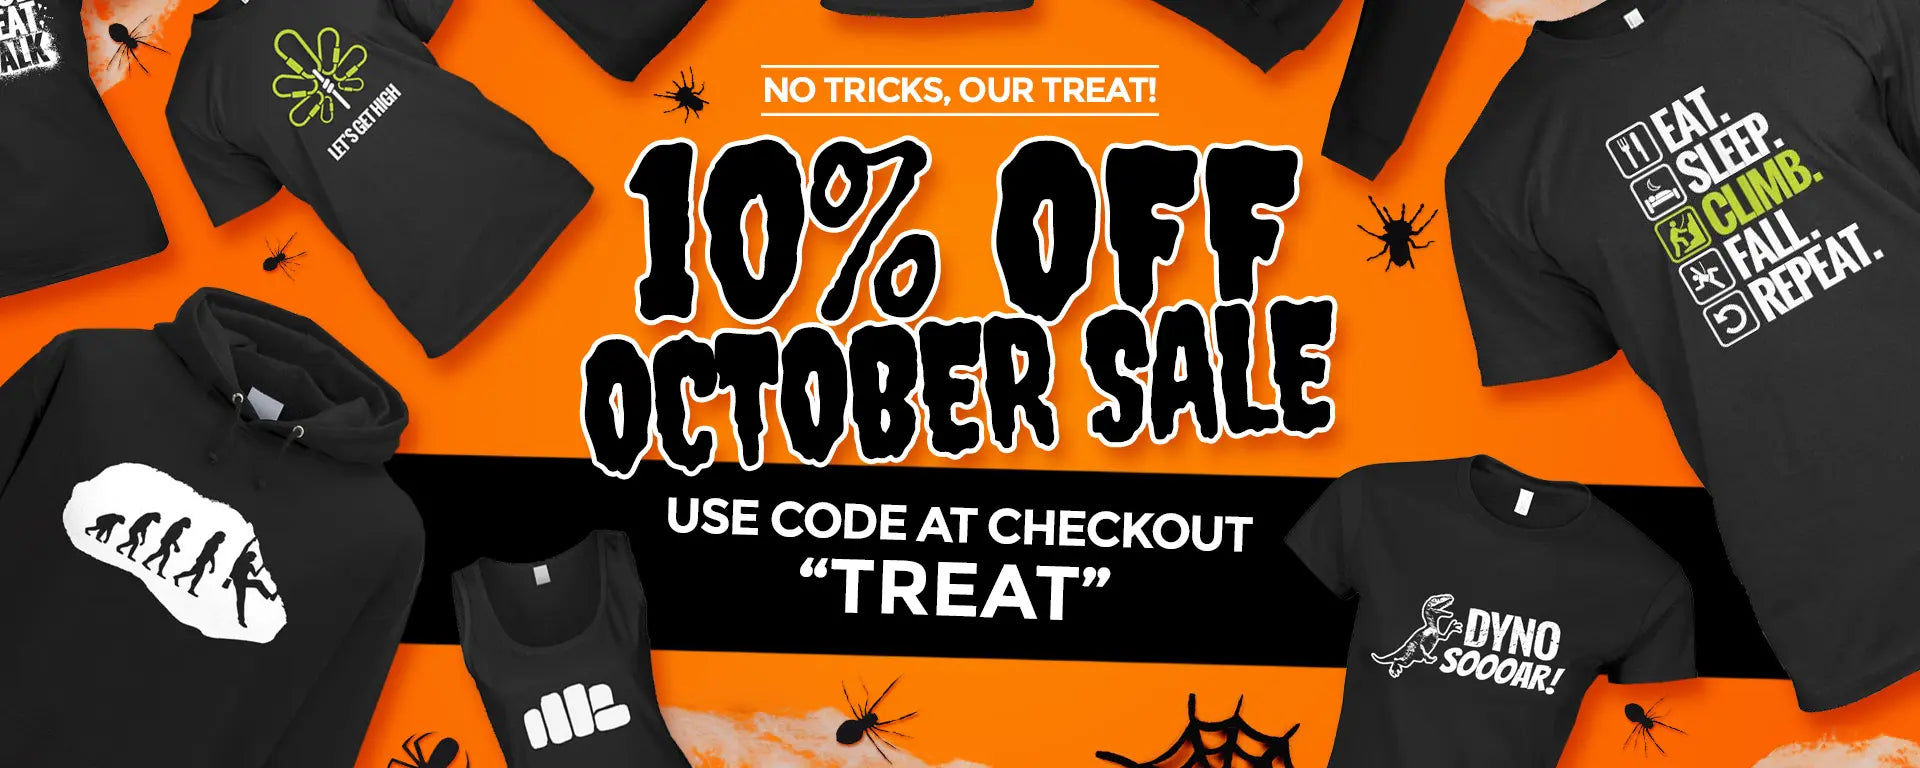 10% Off October Sale on all clothing - Climbing Porn